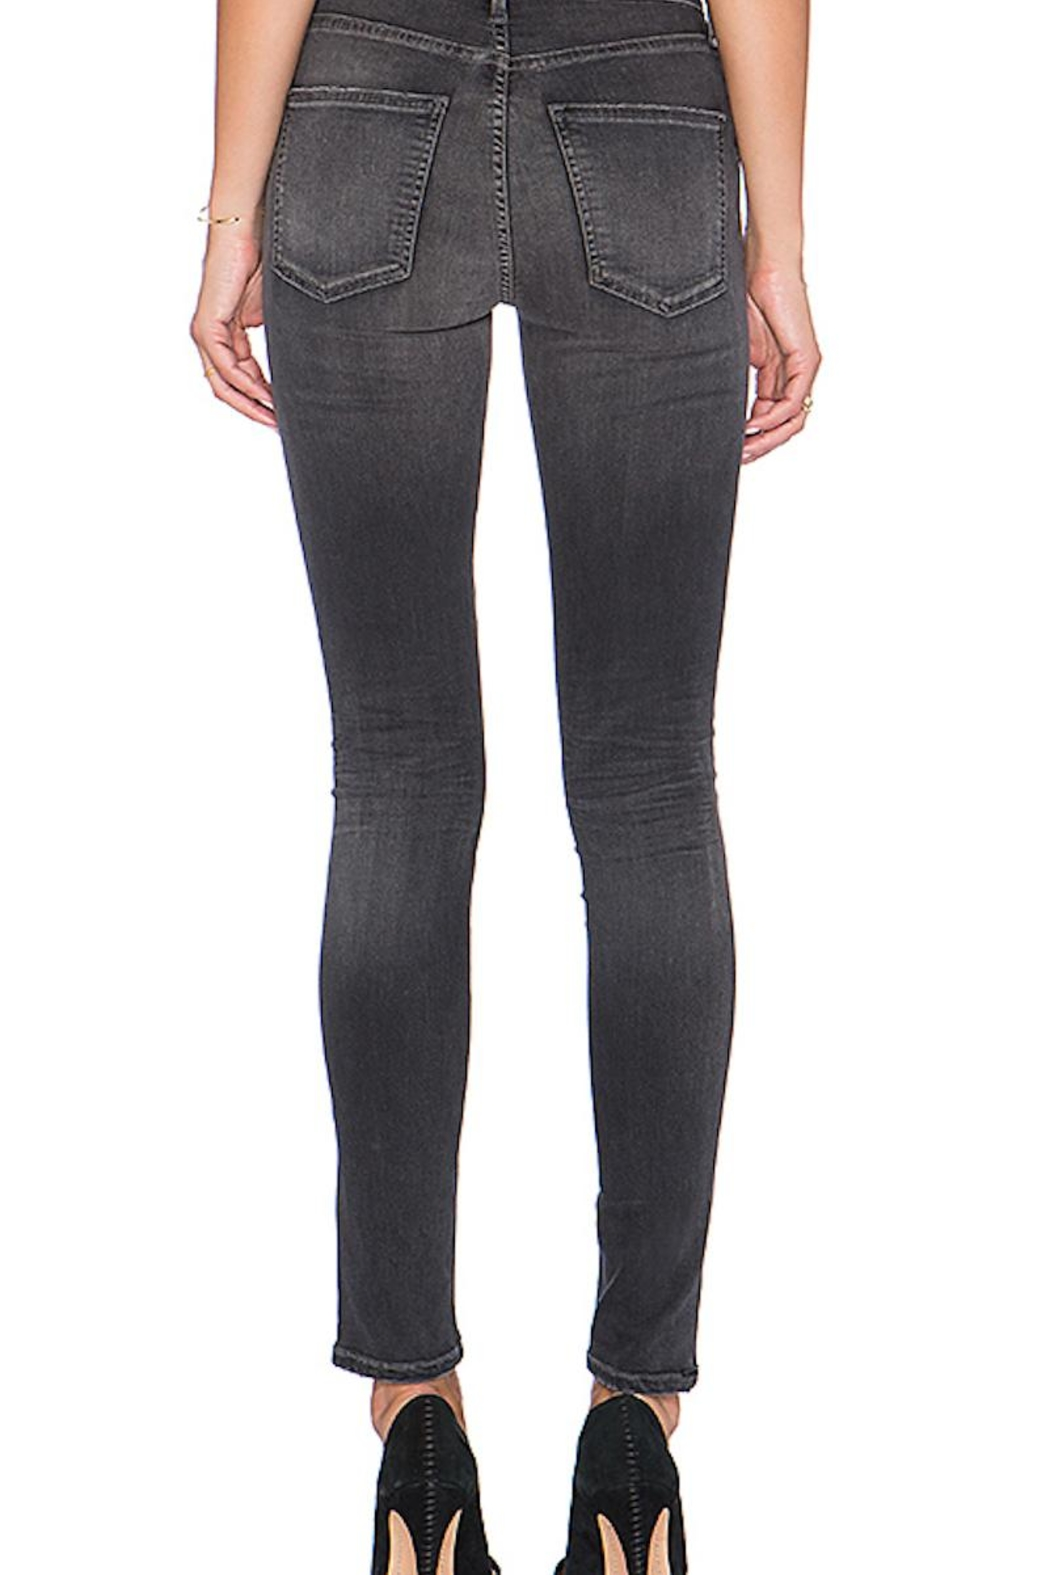 Citizens of Humanity Grey Skinny Jeans - Side Cropped Image